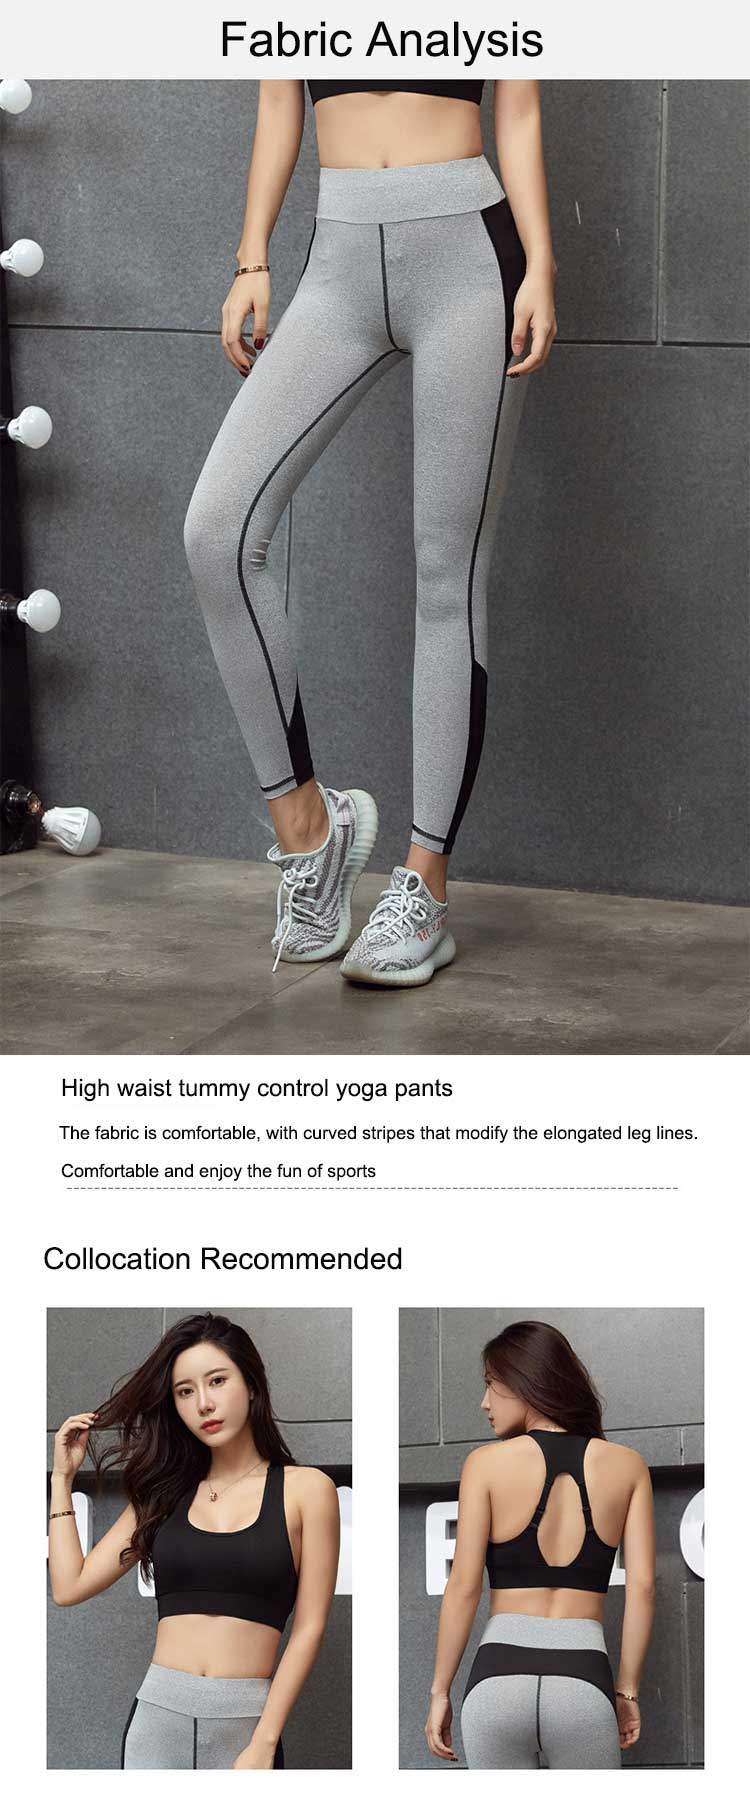 High-waist-tummy-control-yoga-pants-will-give-you-send-out--the-attractive-confidence-during-exercise.